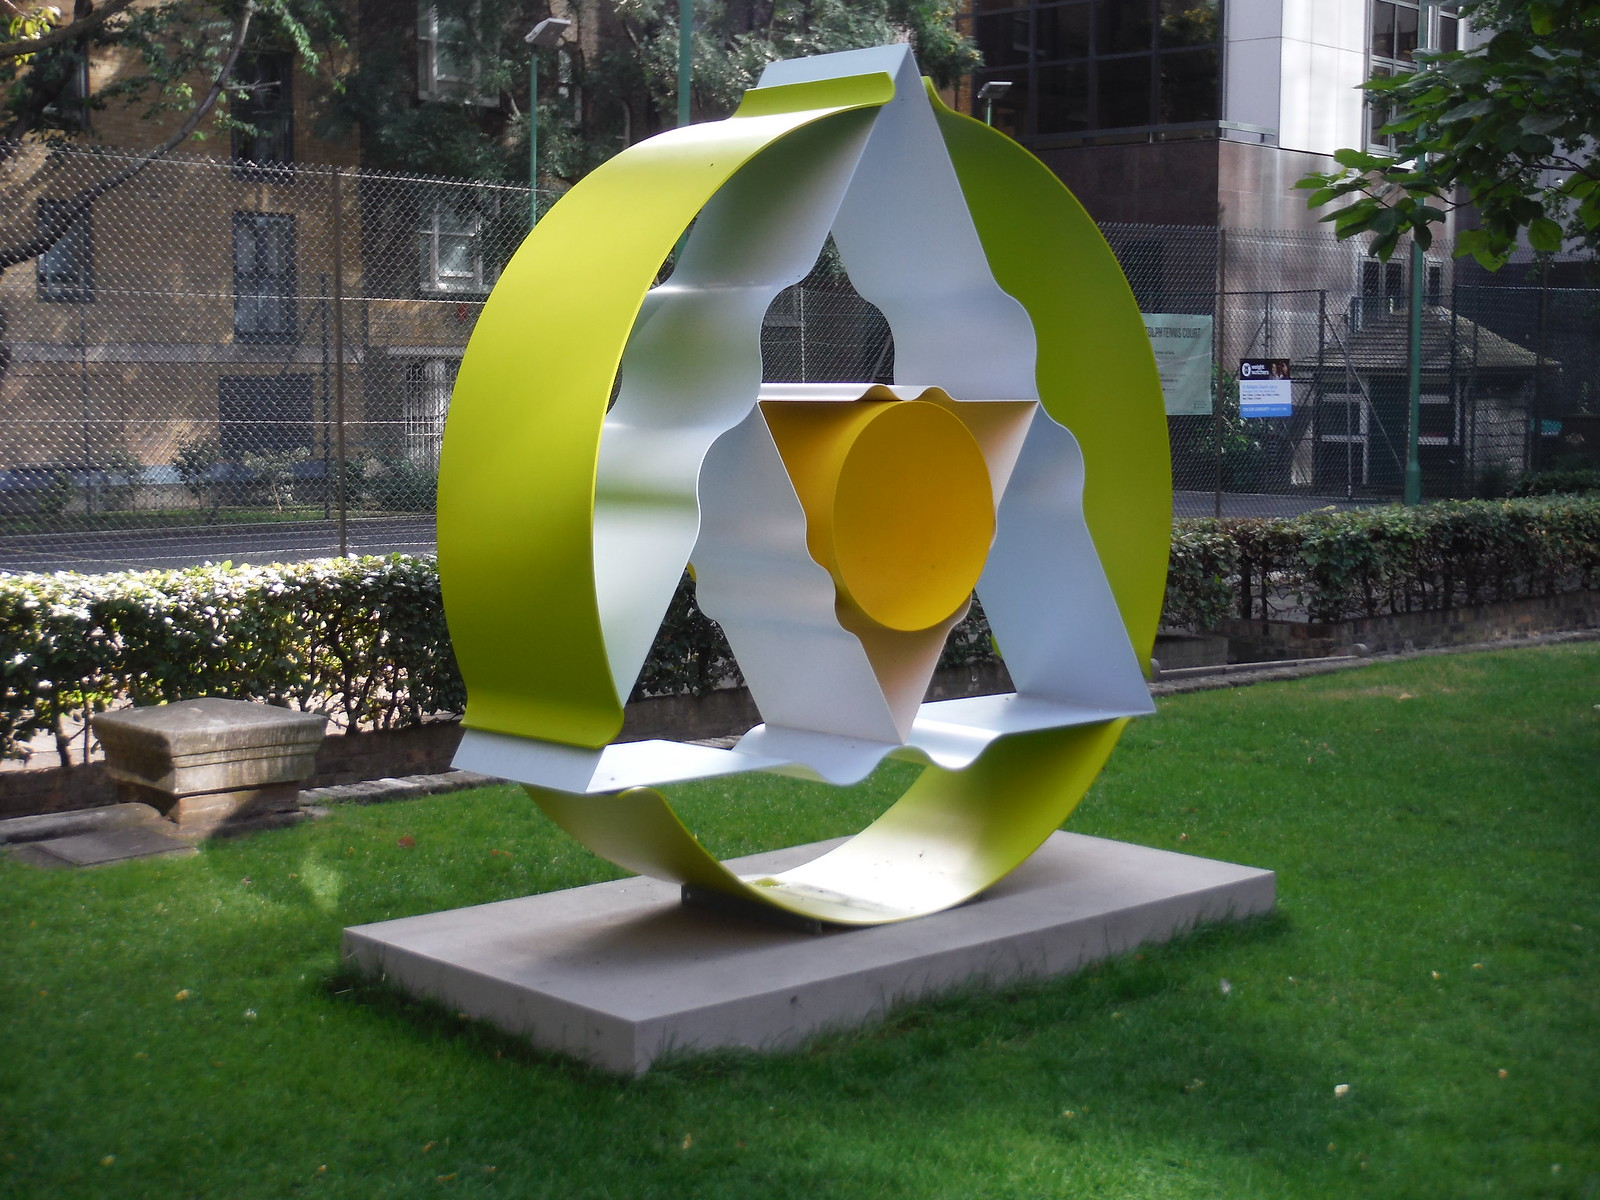 David Annesley - Untitled SWC Walk Short 24 - Sculpture in the City